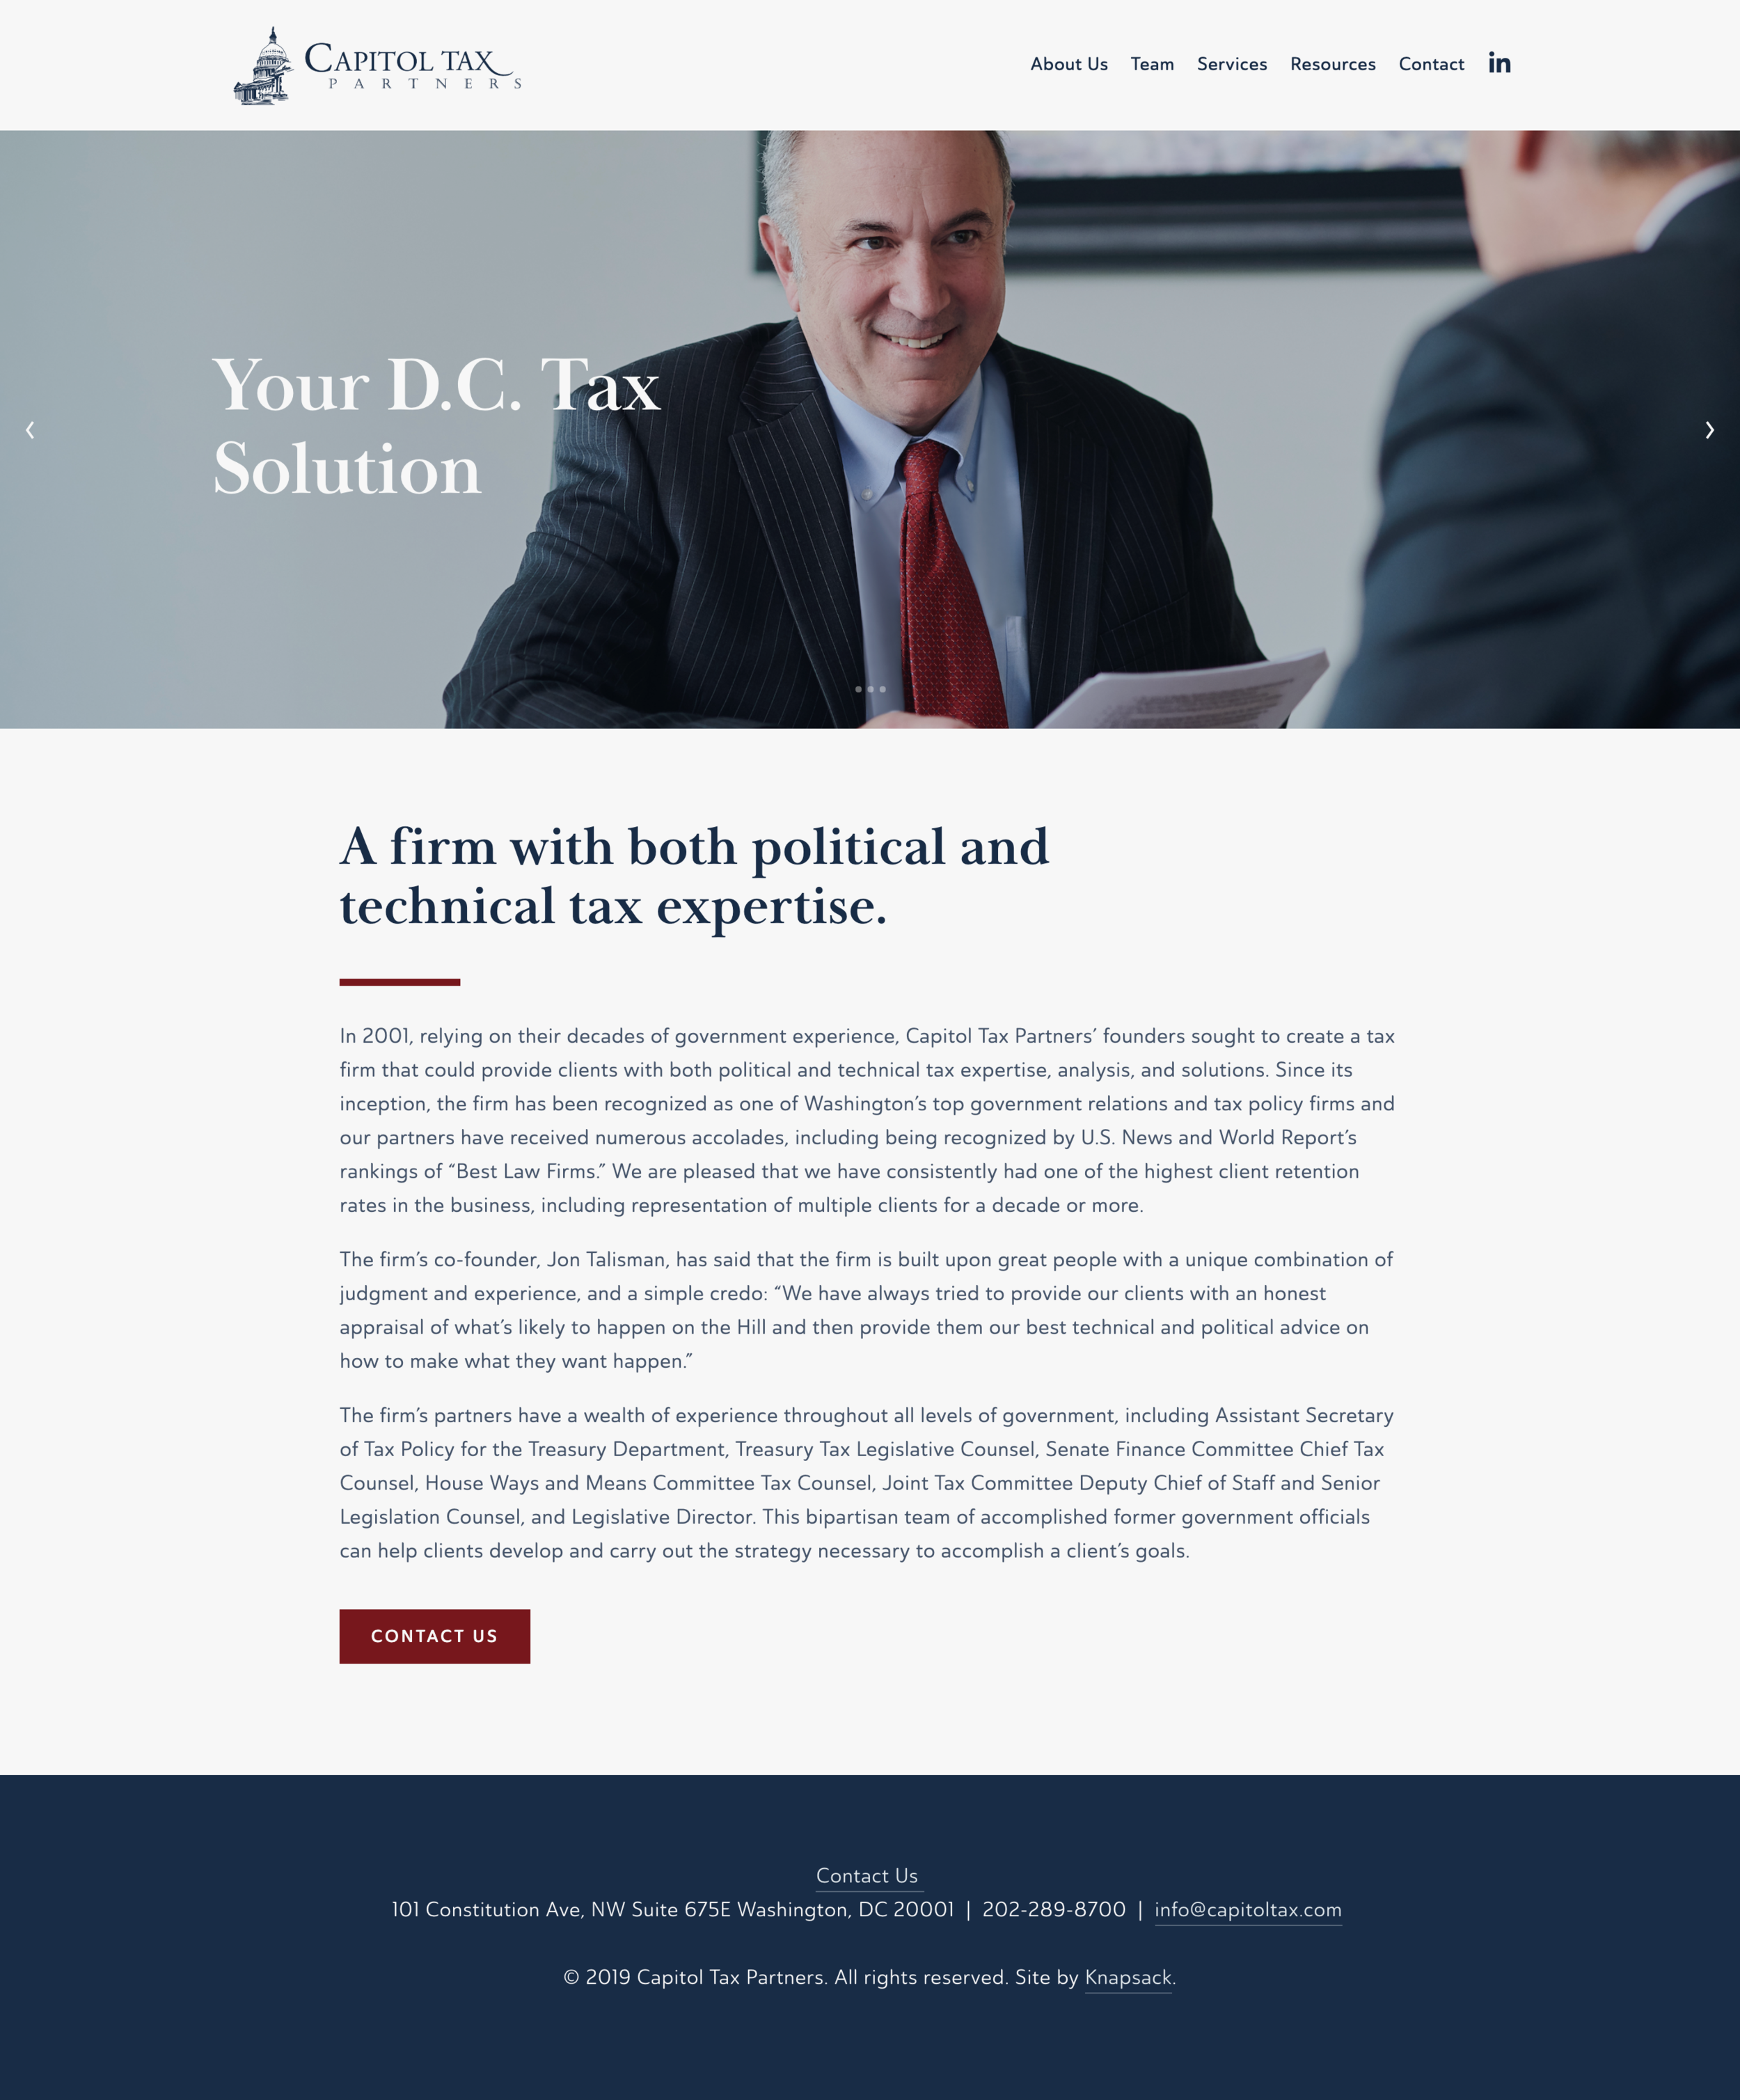 CapitolTaxPartners_About_Mac_Overlay.png